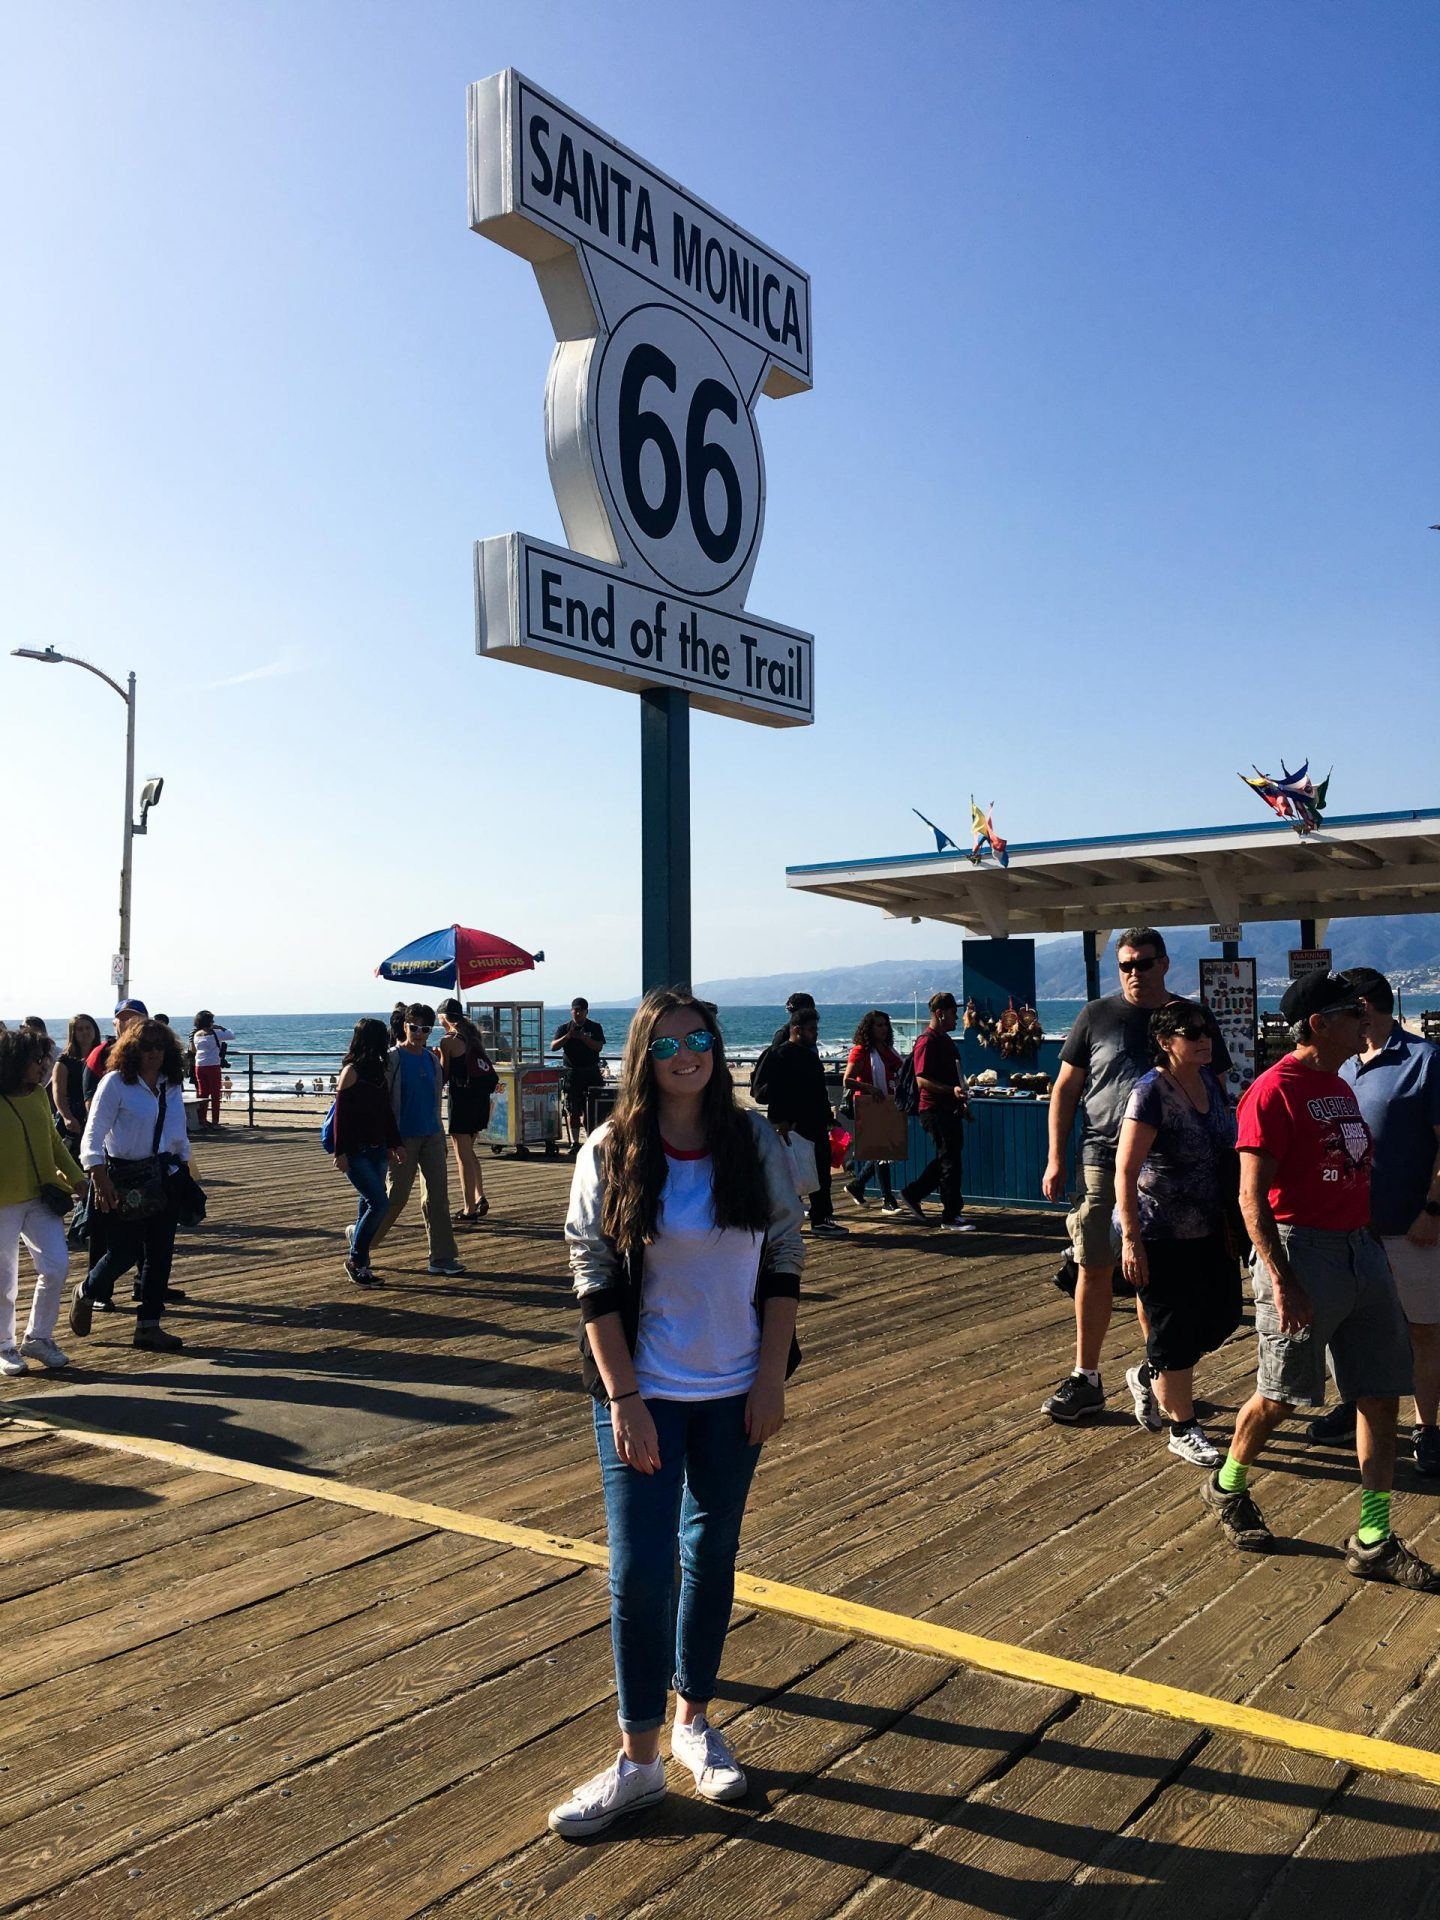 Santa Monica Pier, End of Route 66 - Los Angeles Travel Diary - Rachel Nicole UK Travel Blogger